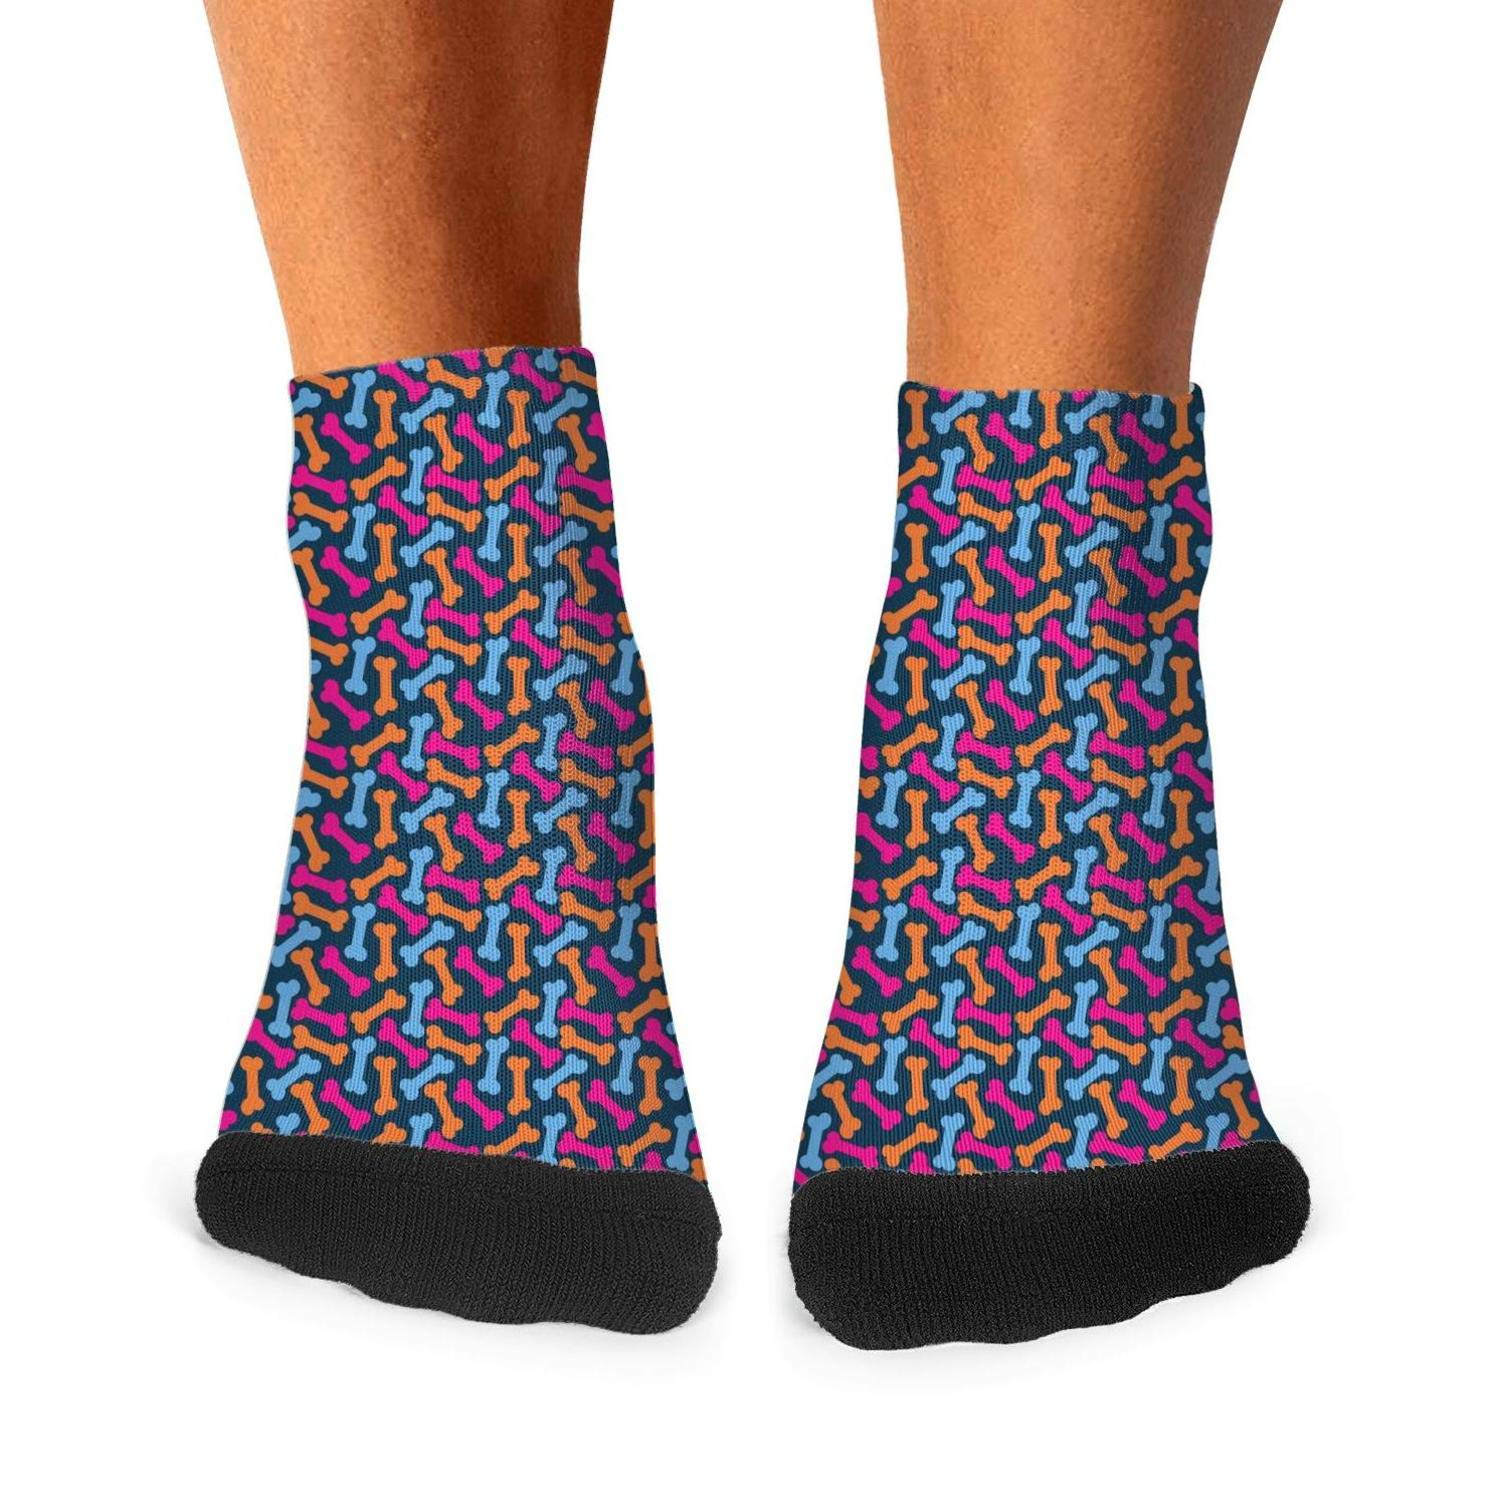 Socks Boot Athletic Compression Value Men dogs-and-bone-chrysanthemum-pattern